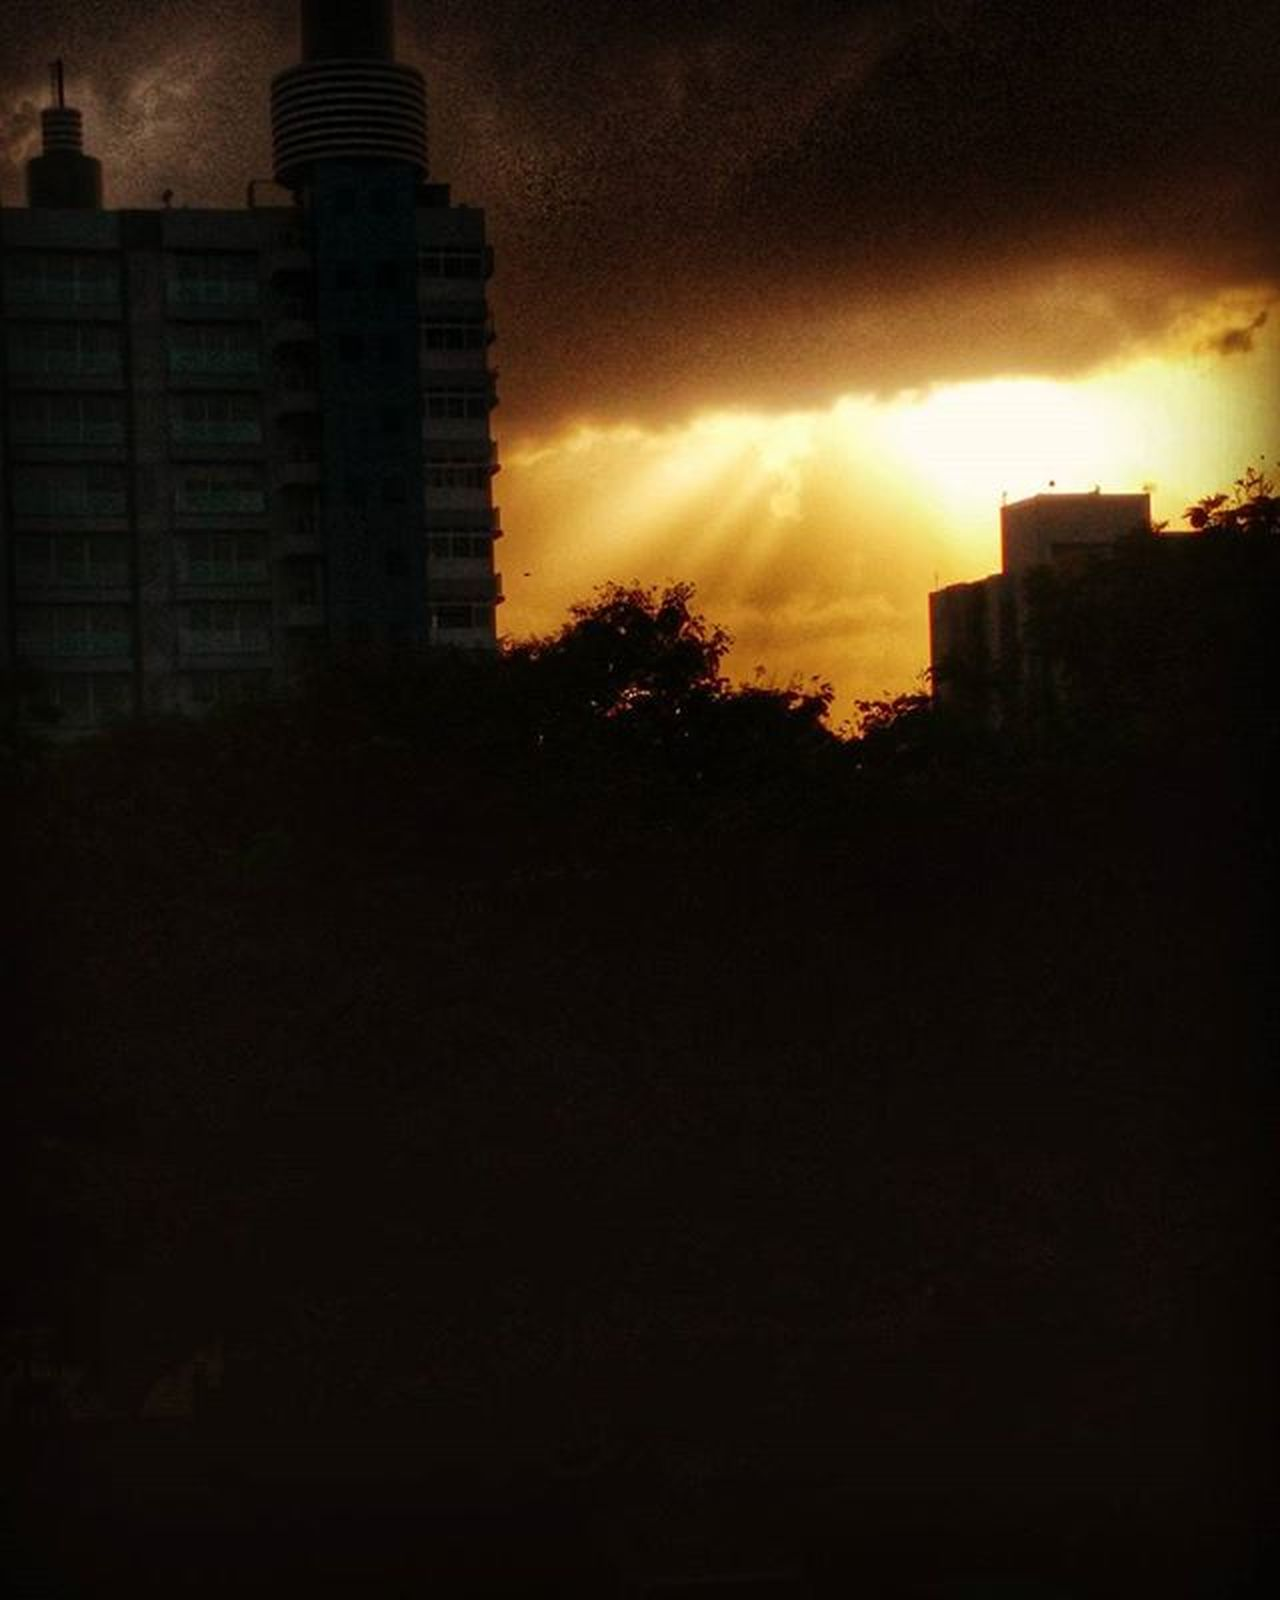 The heavenly beam! Sunset Silhouette Sunrays Clouds Mi4 Instaedit © Jeet Pipalia